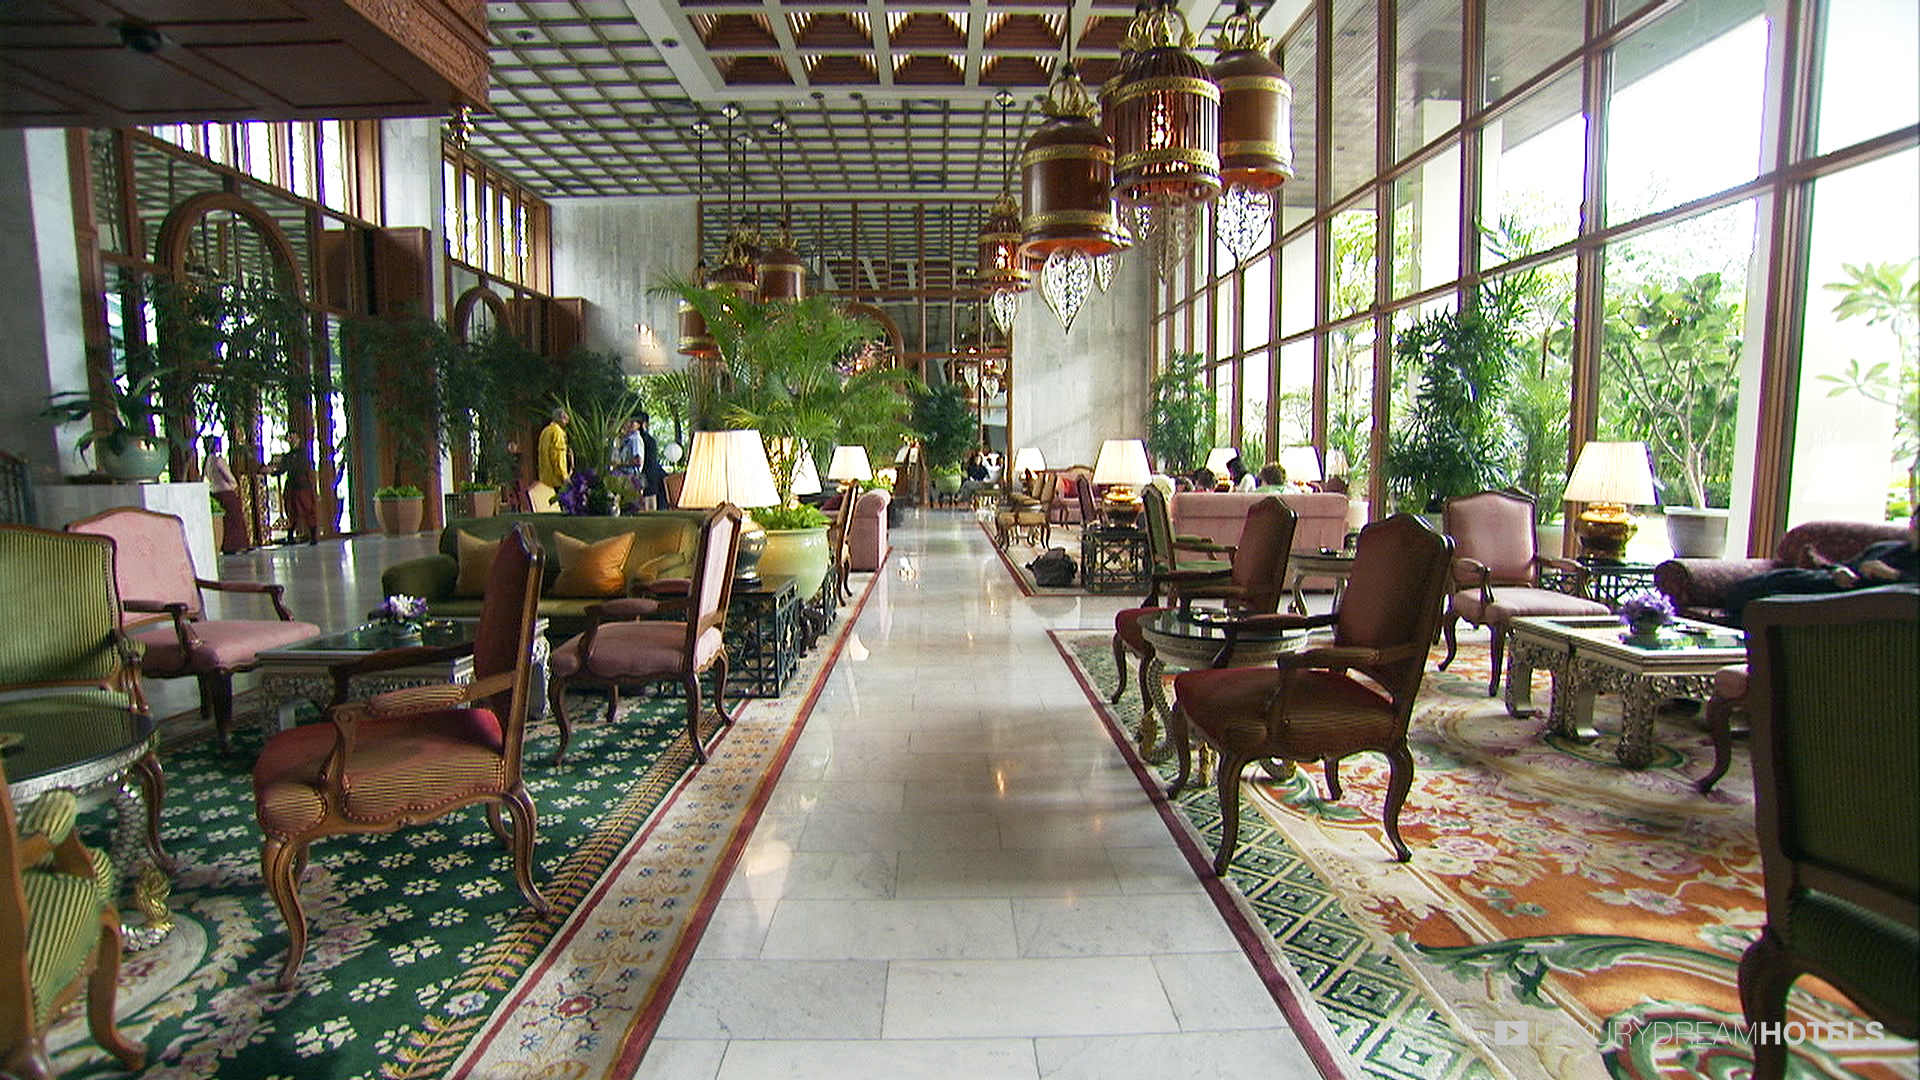 50 most luxurious hotels in the world - Hotel mandarin oriental ...